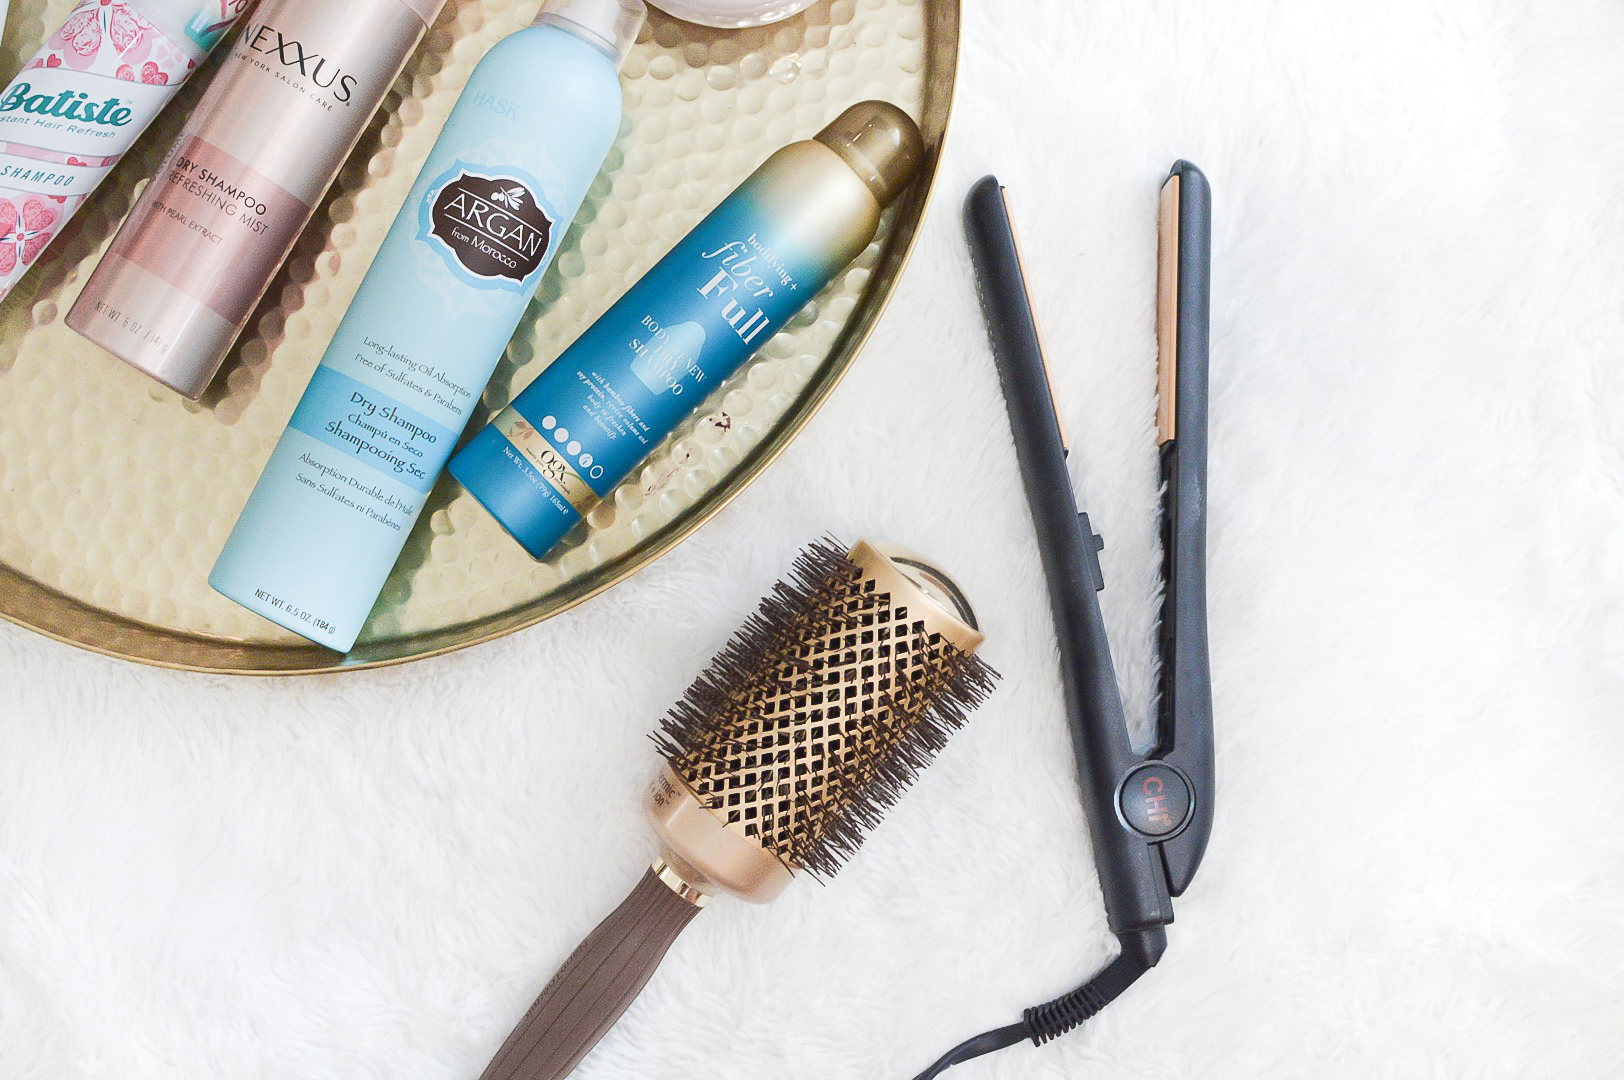 The Best Under $10 Dry Shampoos